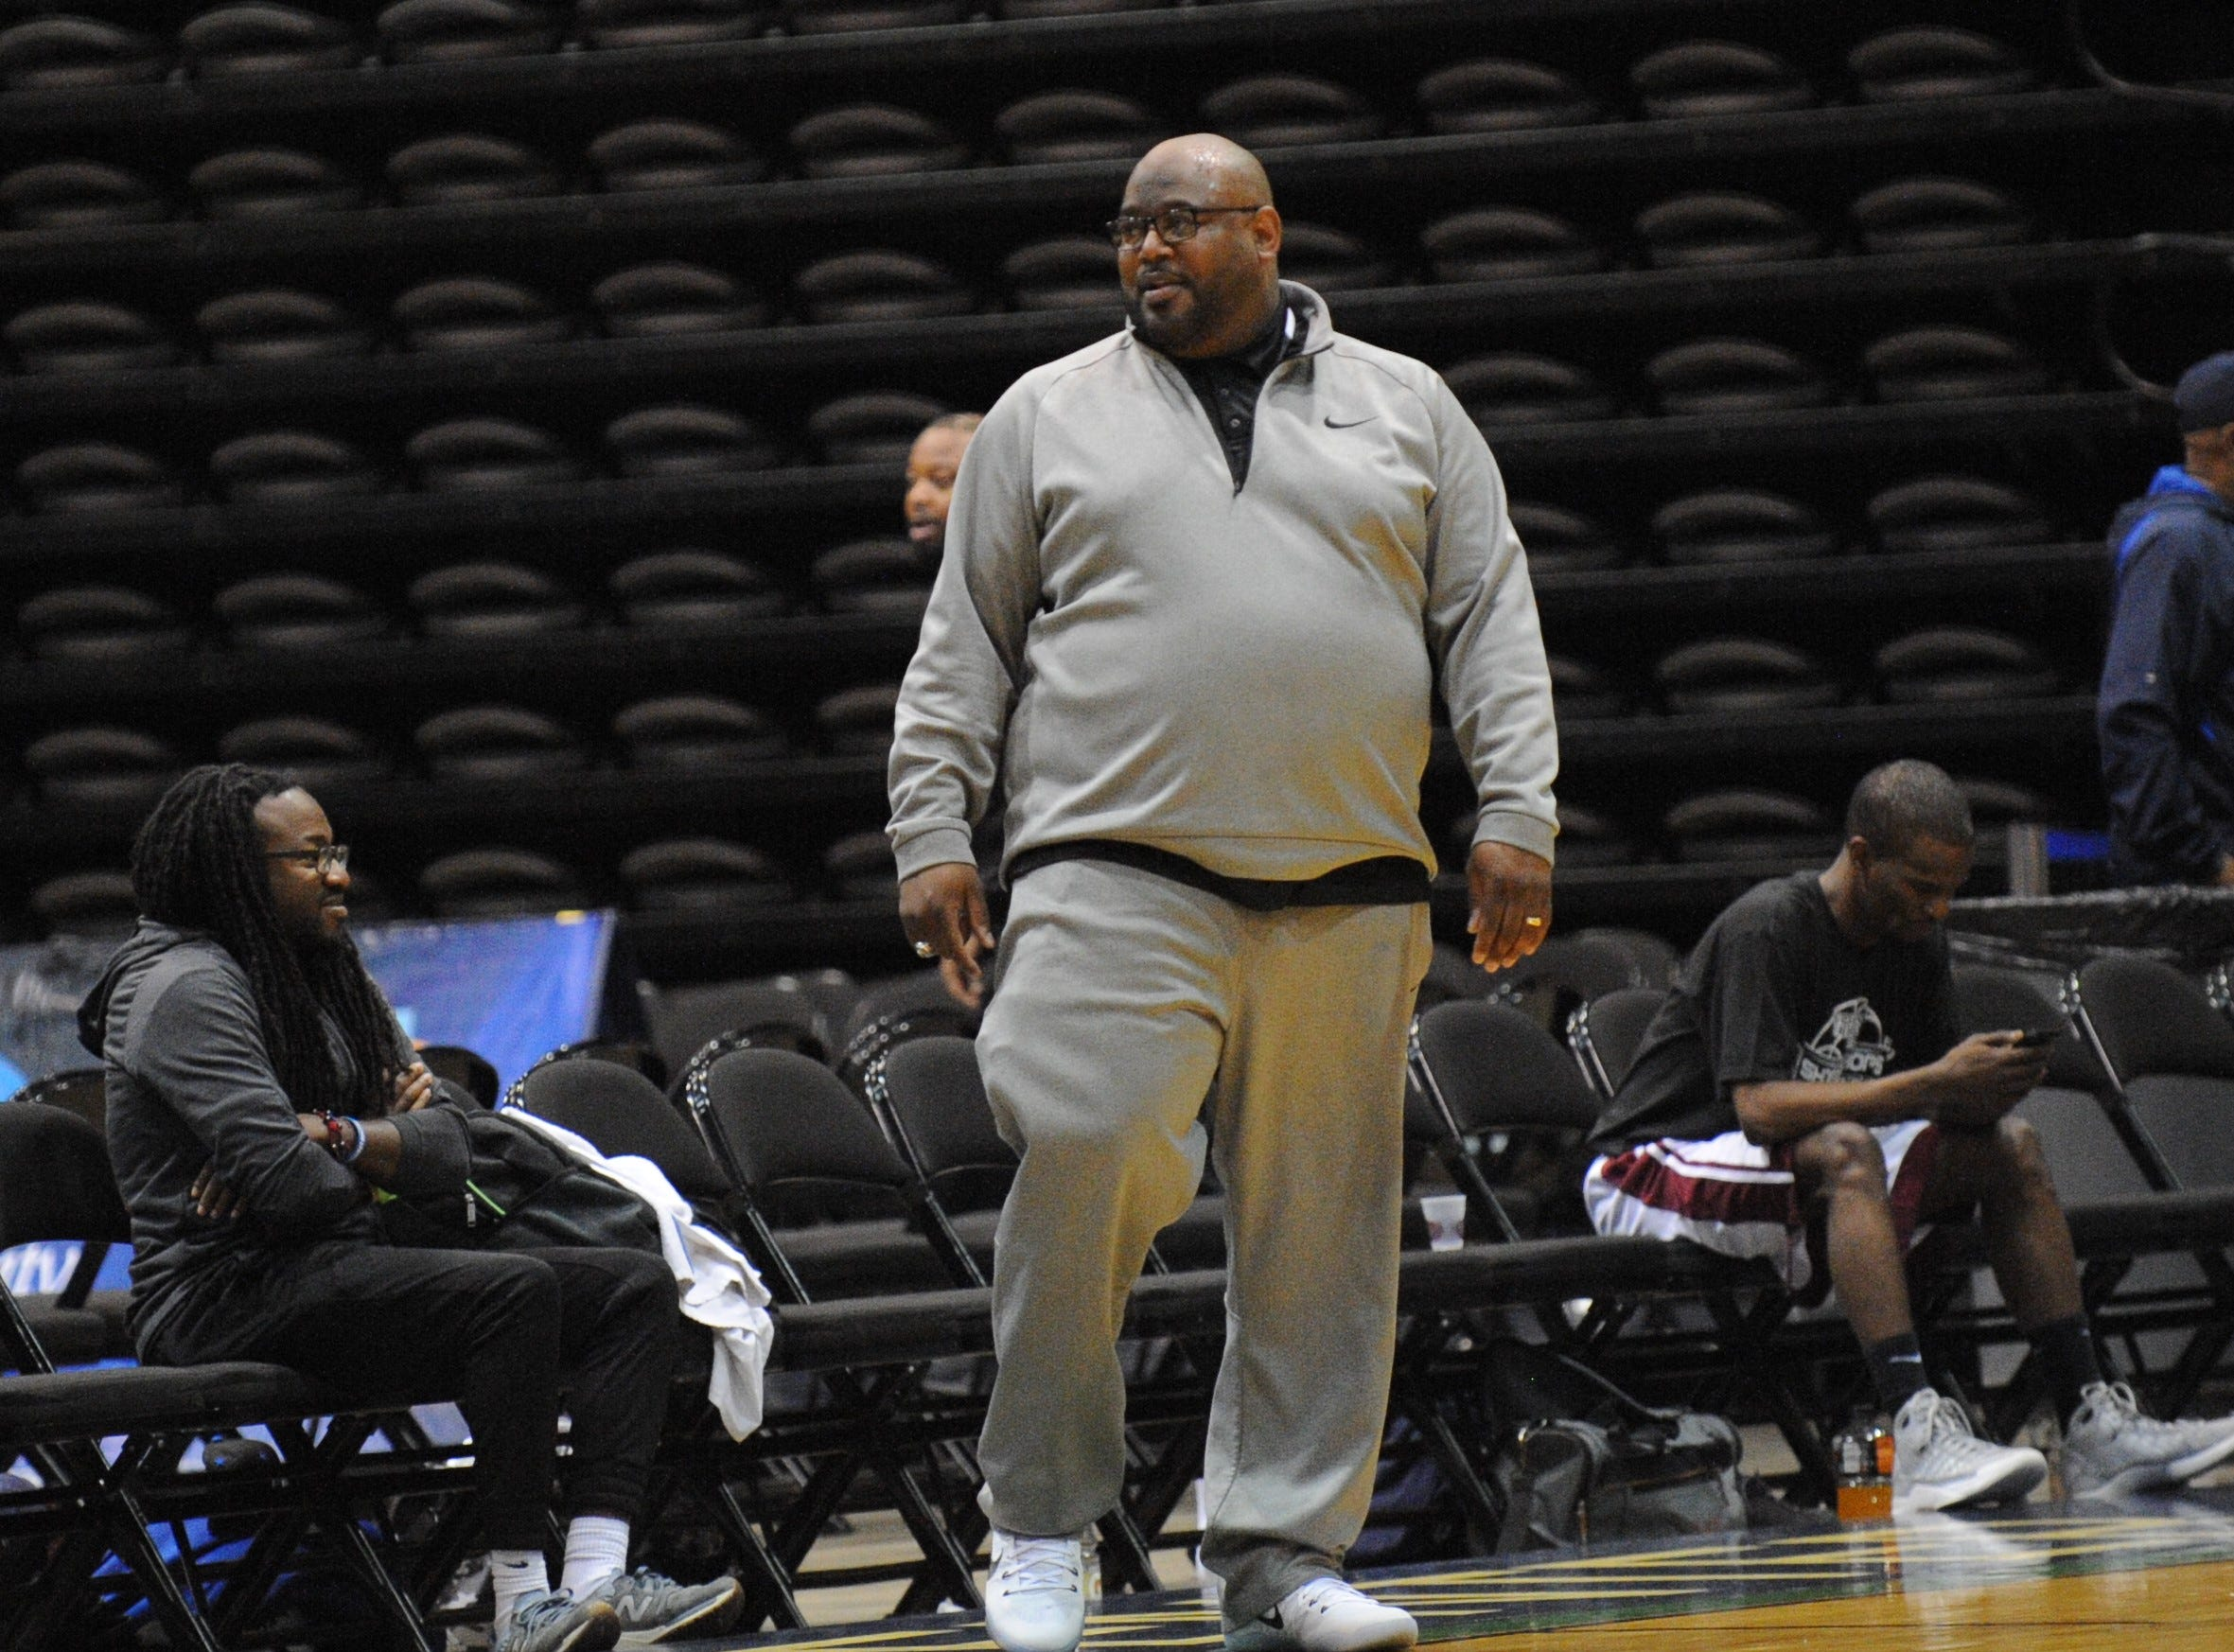 Nick Purnell coaches the 2001/2008 Snow Hill basketball team at the first ever Shore Hoops Alumni Classic on Saturday, Dec. 22, 2018